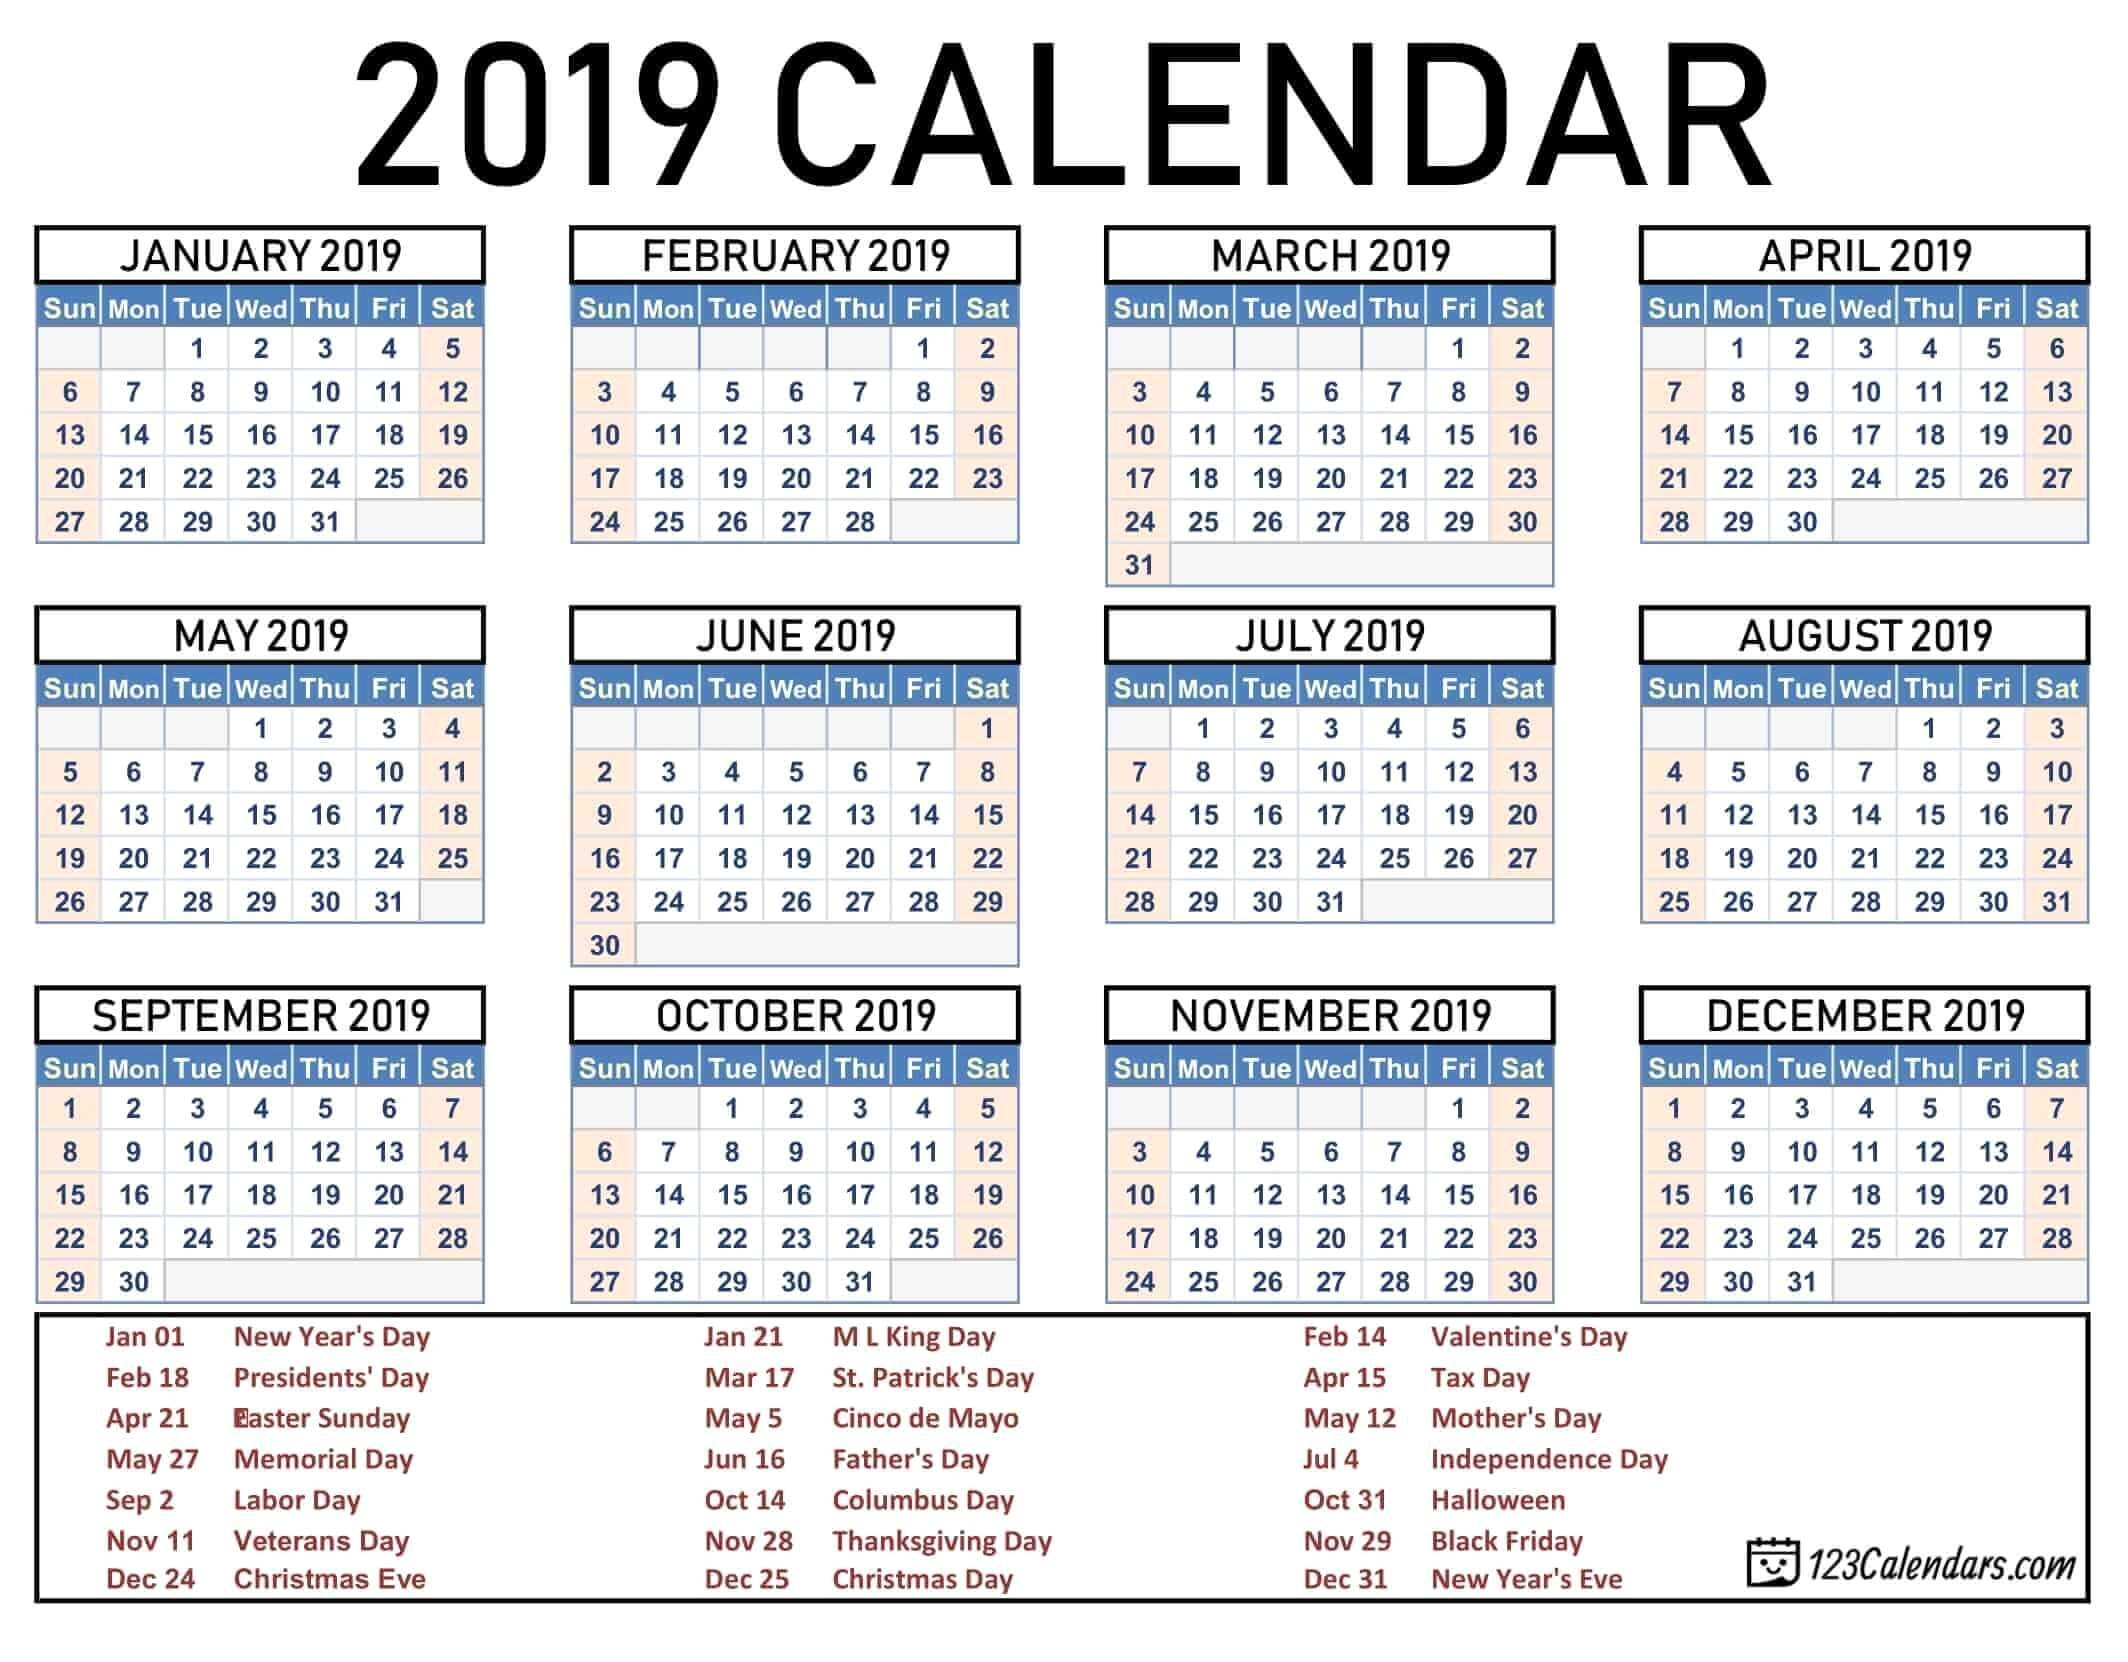 2019 2020 School Year Calendar Template Year 2019 Printable throughout Microsoft Word Calendar Template 2019-2020